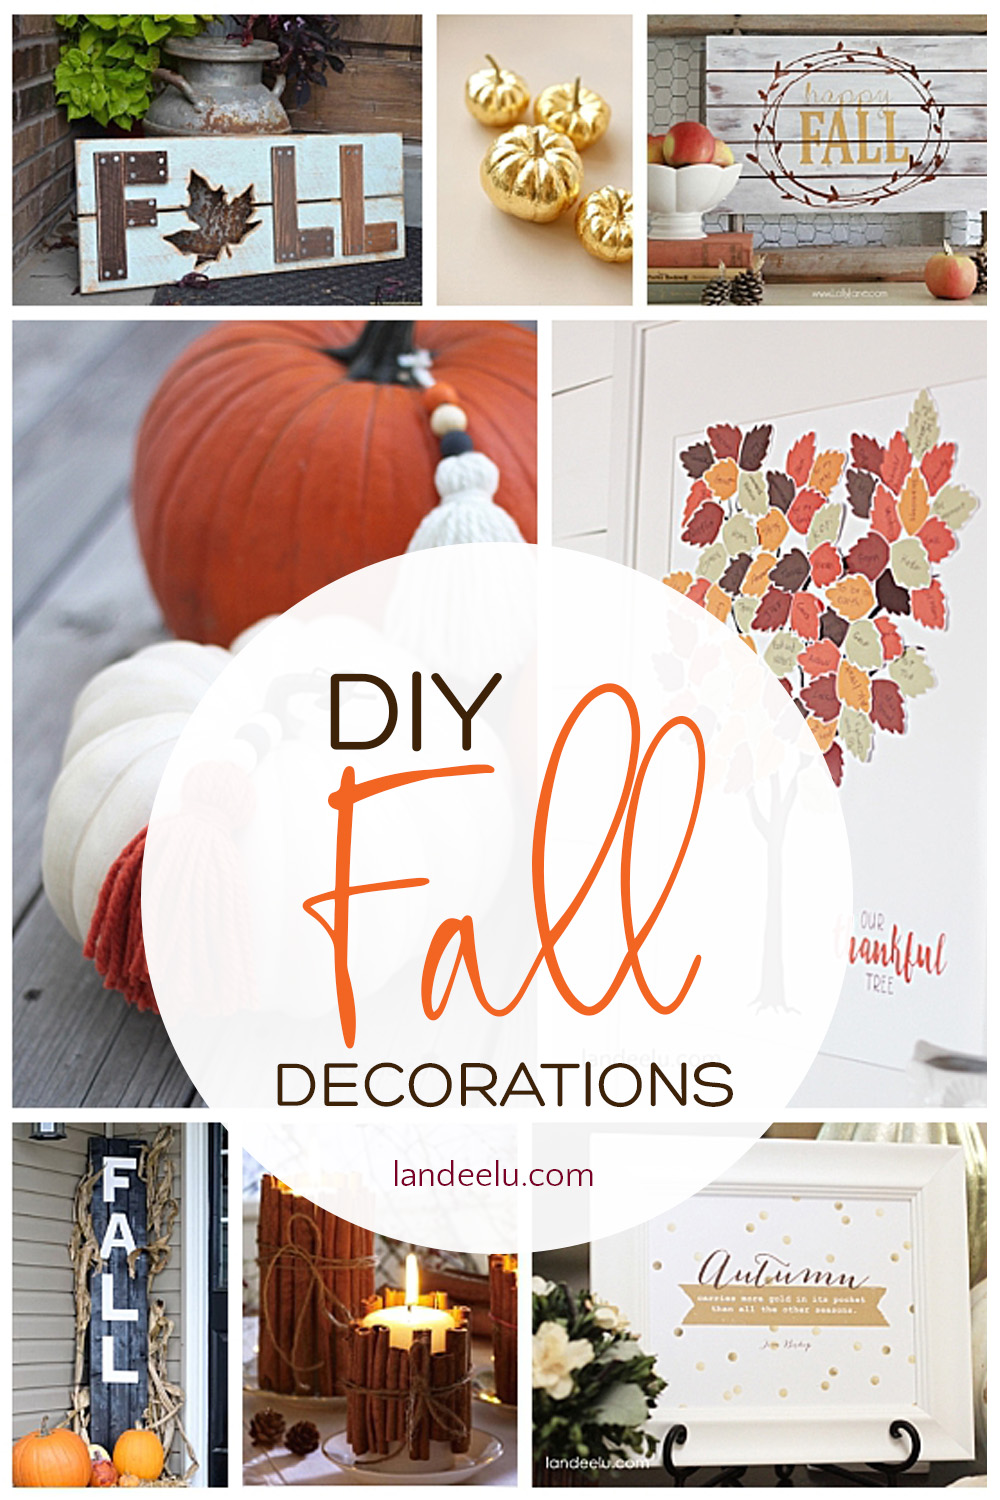 Deck the halls for fall! Beautiful ideas for DIY fall decorations! #falldecor #falldecorations #diyfalldecor #autumndecor #fallideas